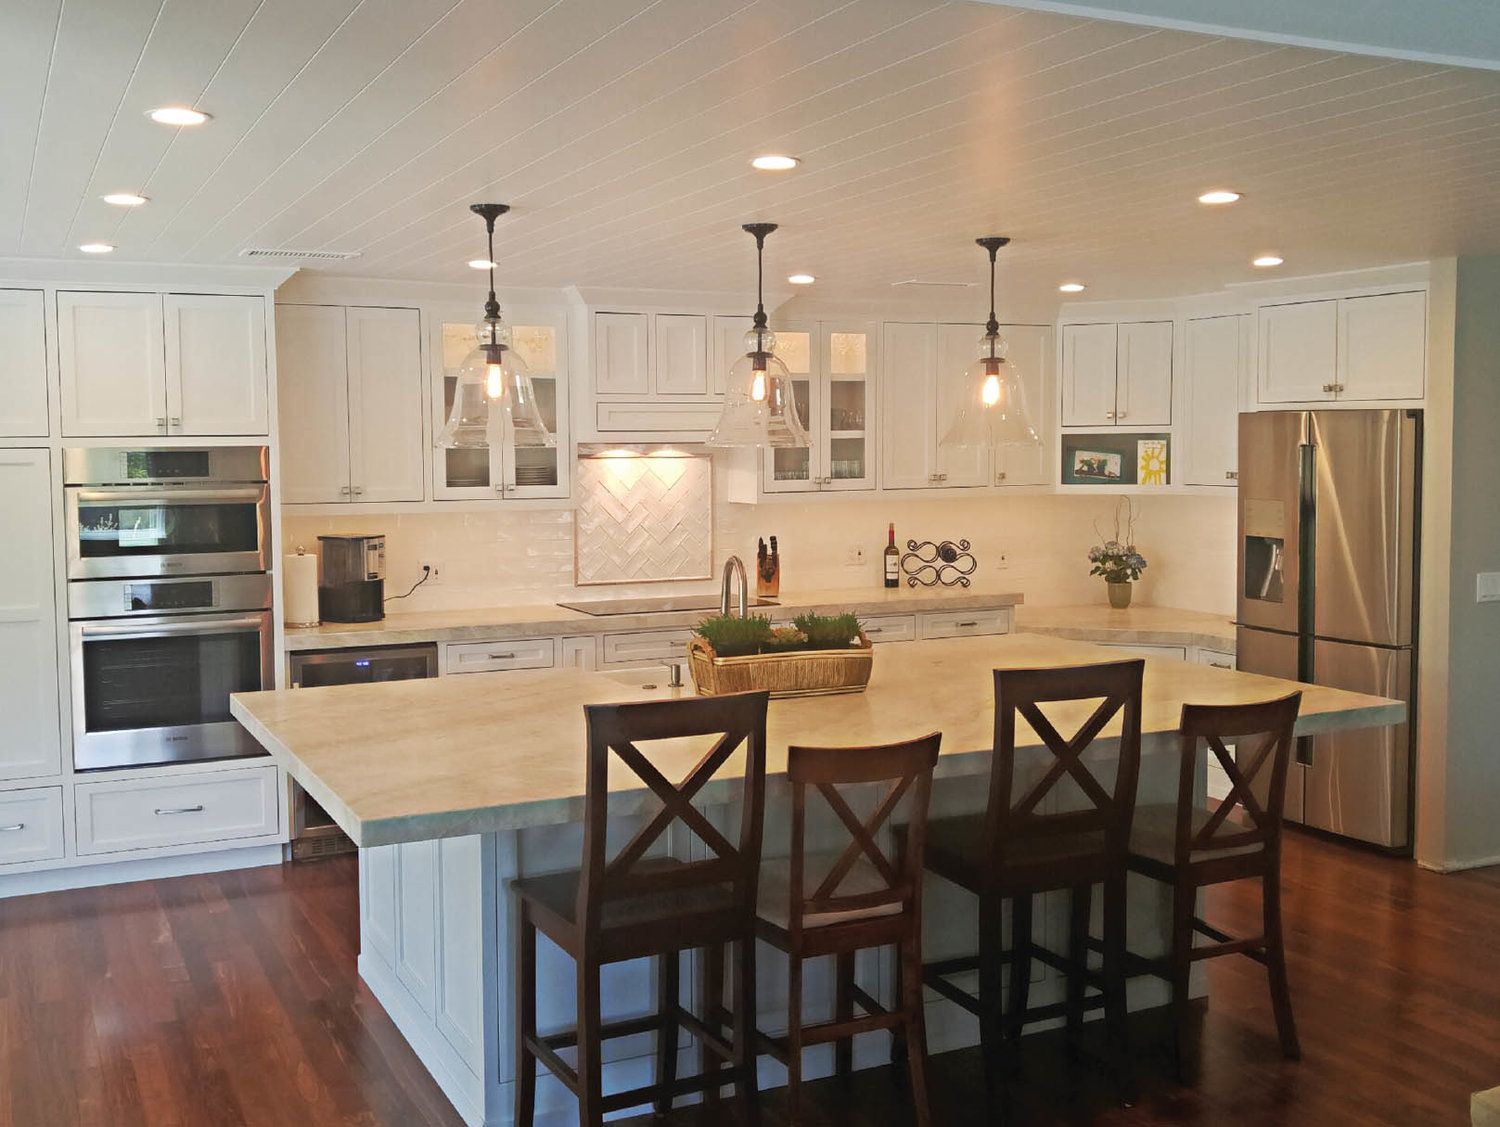 MASING CONSTRUCTION INC. When you think about remodeling